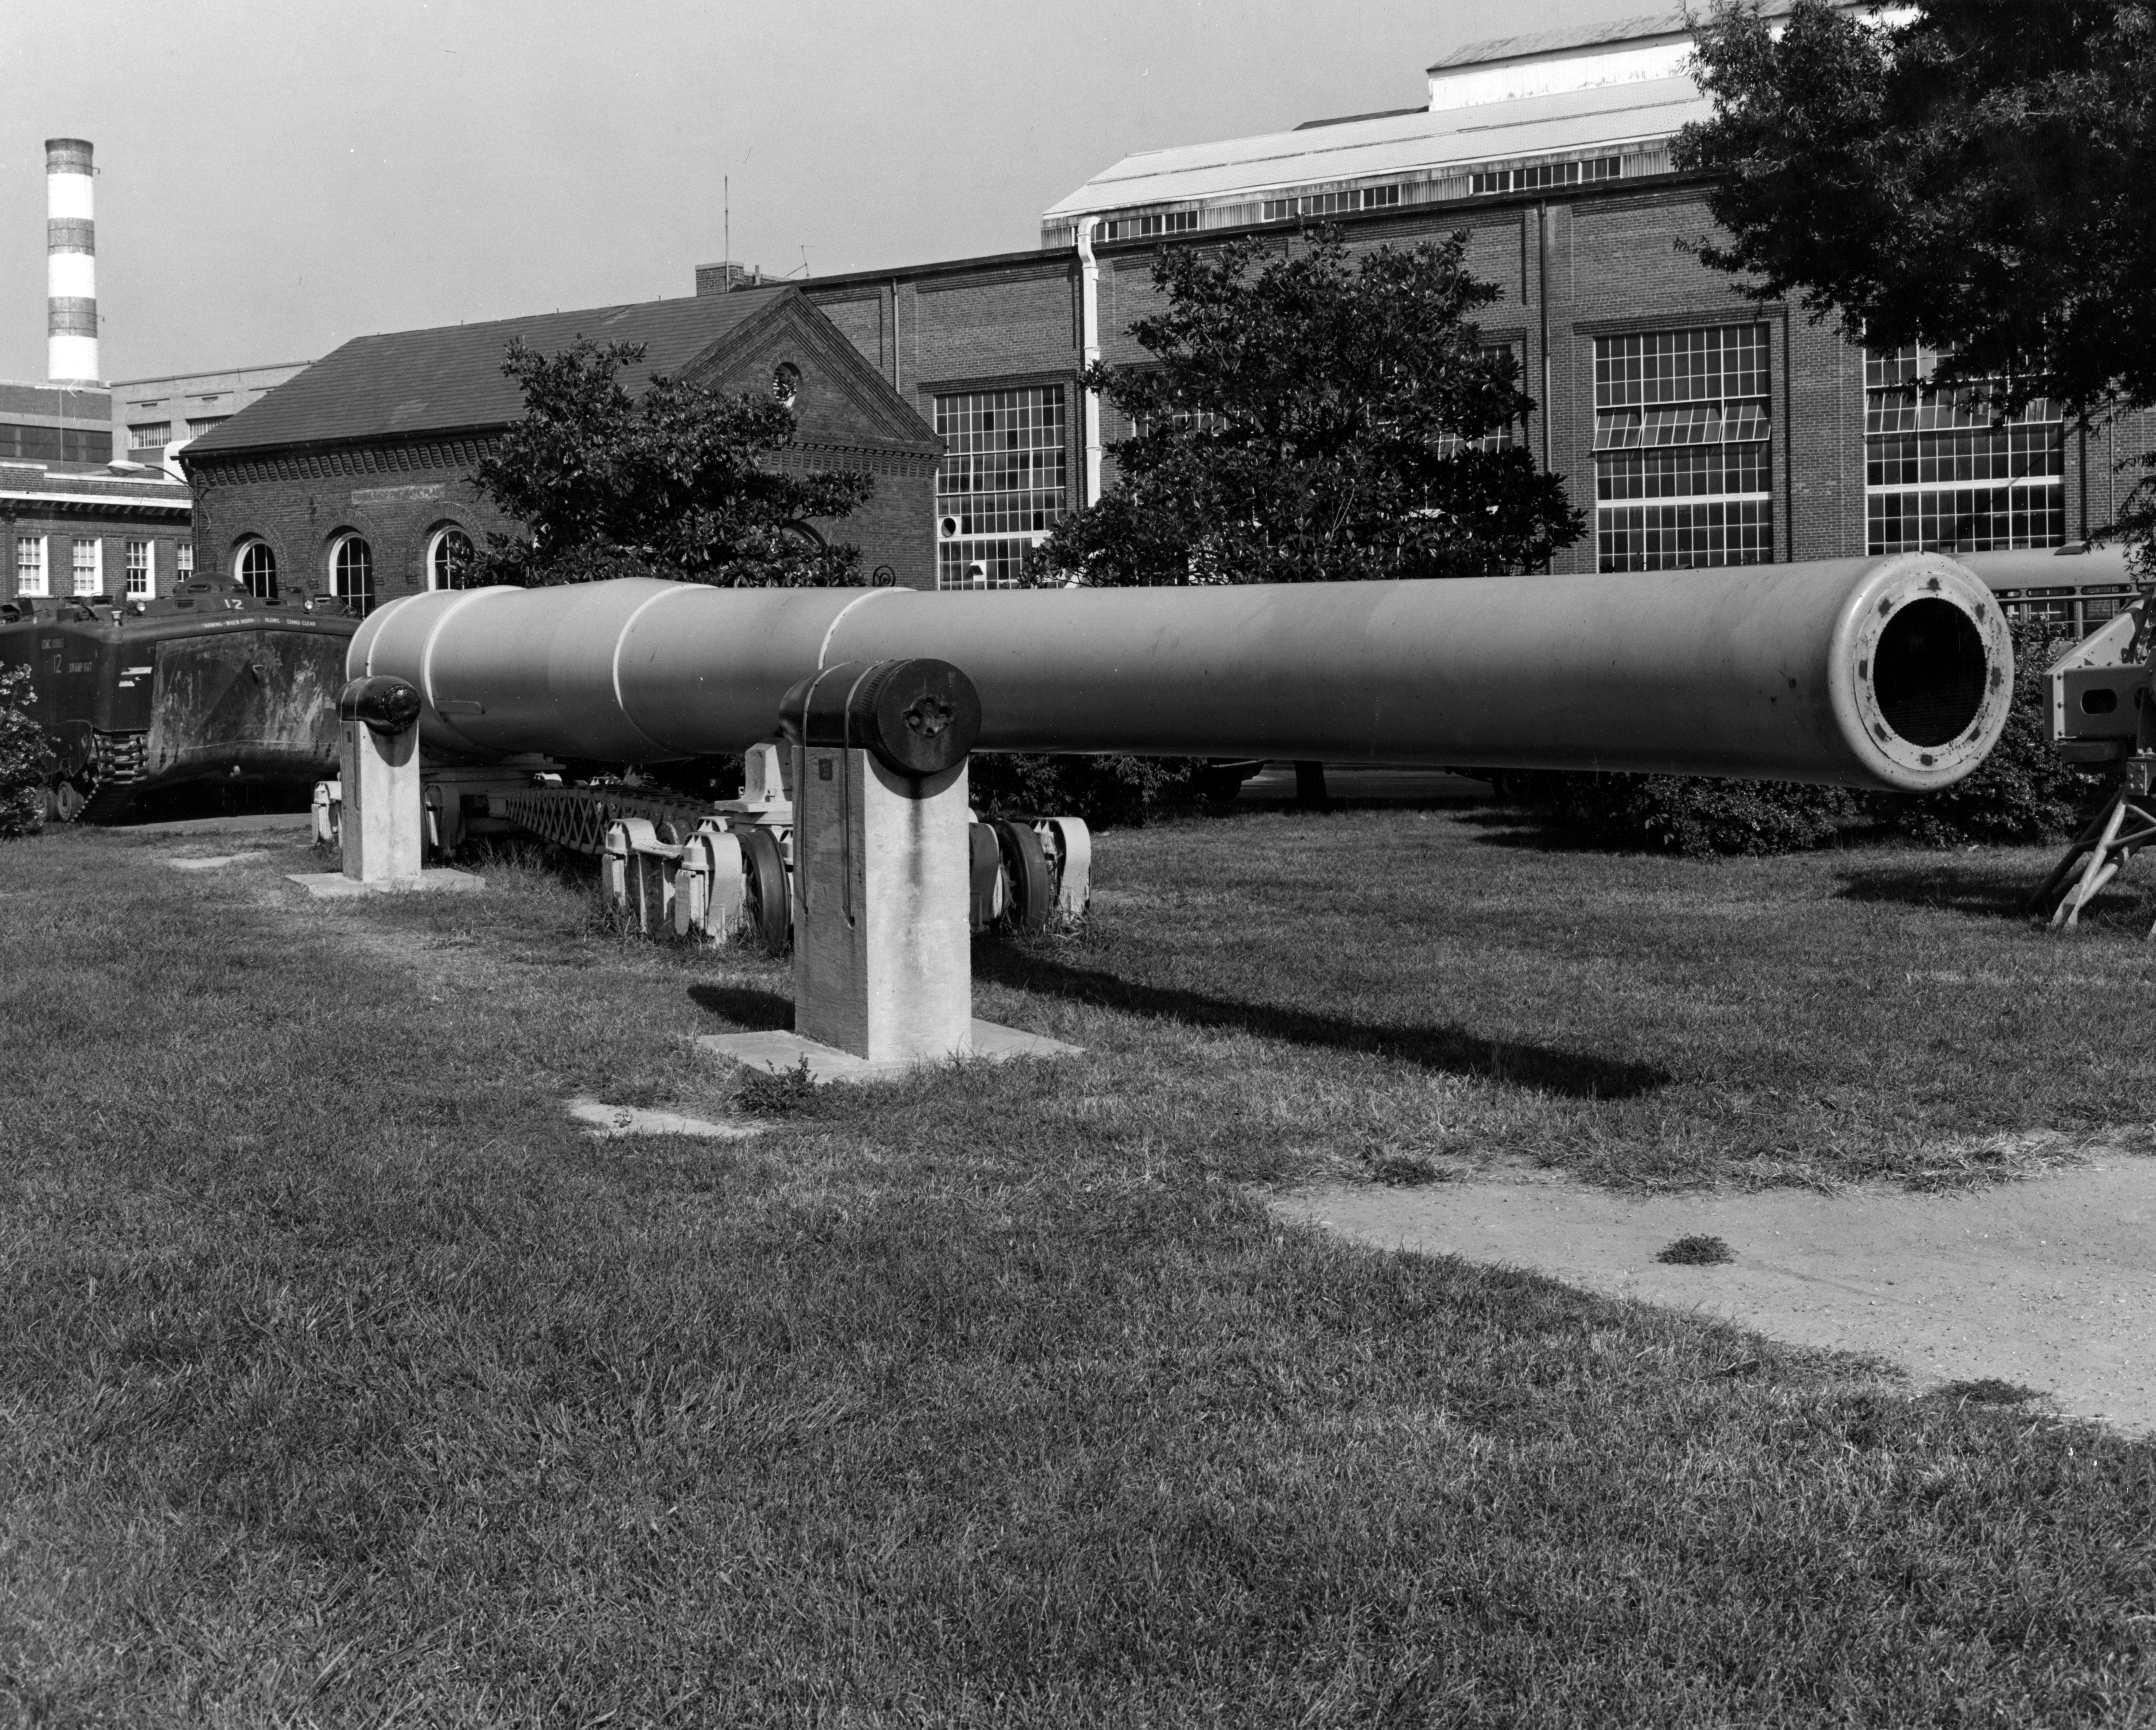 Public Domain Photo of the type of gun once housed at Battery Steele.  This photograph was taken at East Willard Park, Washington Navy Yard, D.C., in October 1974 by the United States Navy.